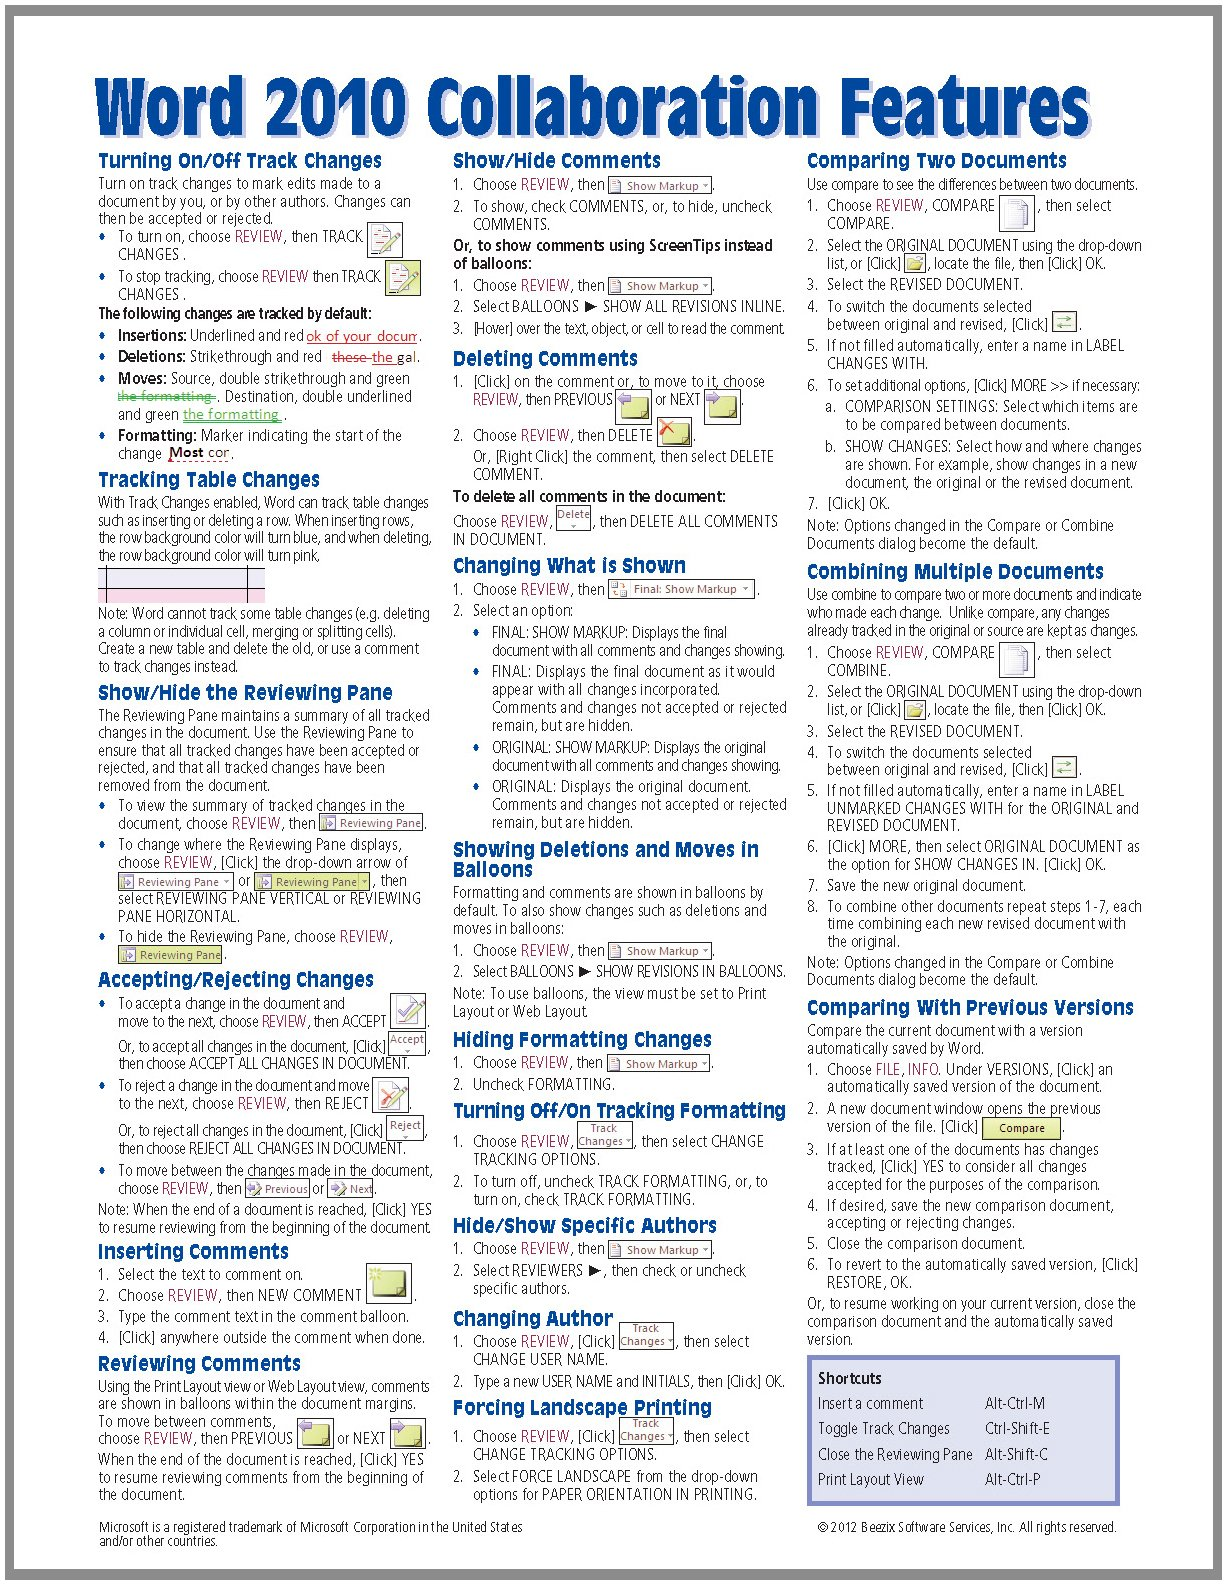 Microsoft Word 2010 Collaboration Features Quick Reference